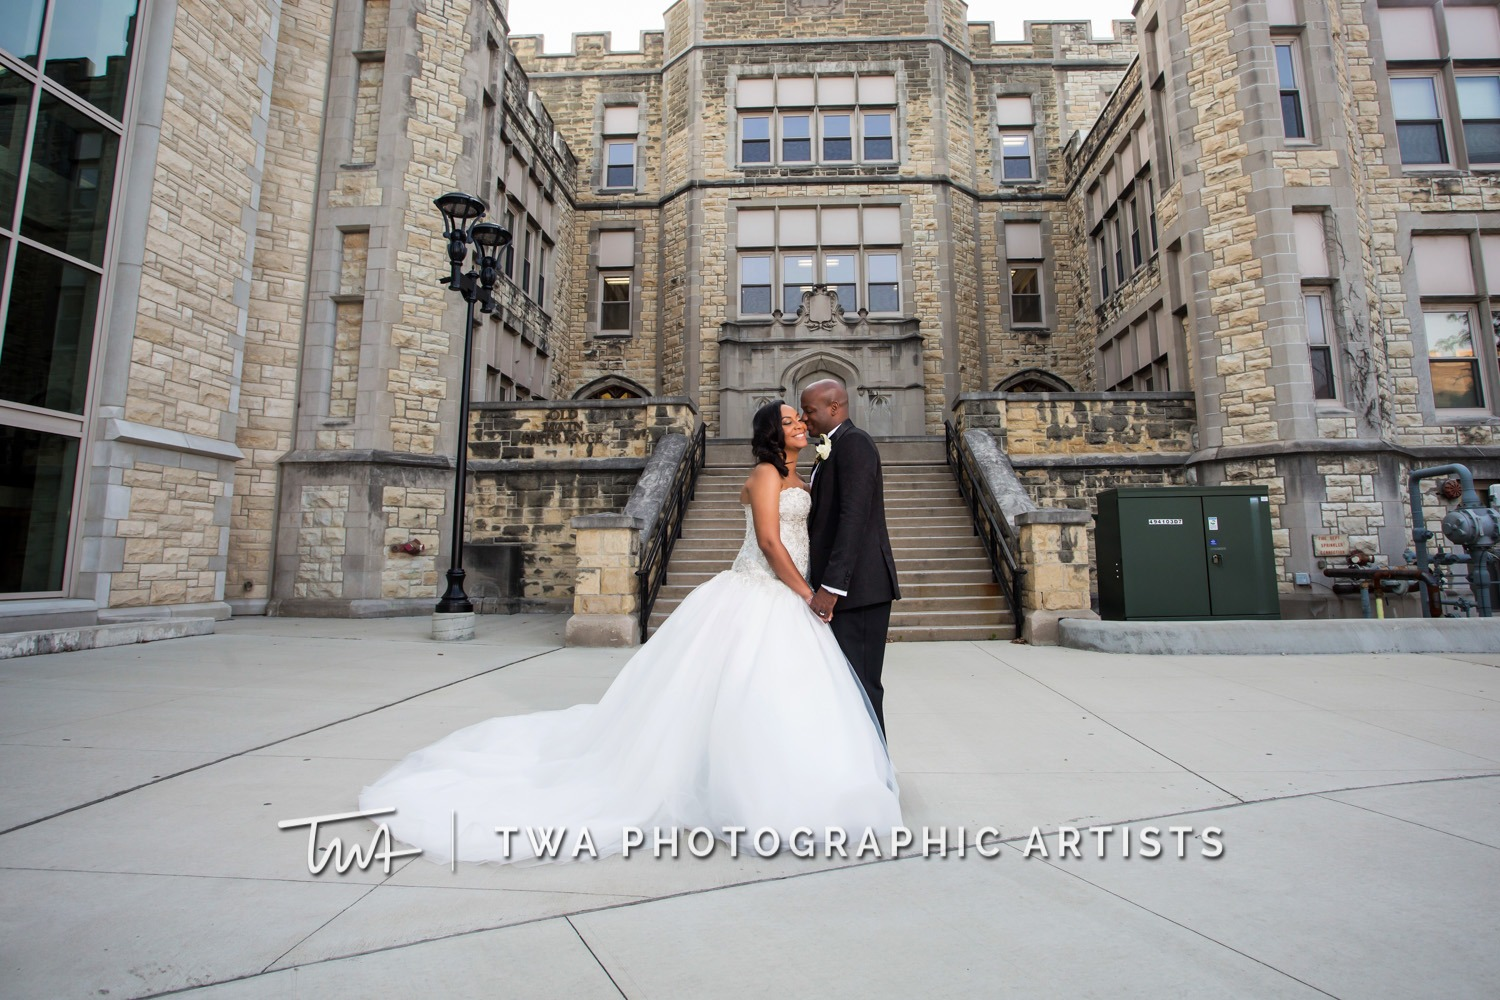 Chicago-Wedding-Photographer-TWA-Photographic-Artists-Haley-Mansion_Graves_Moffett_JM-021_0359